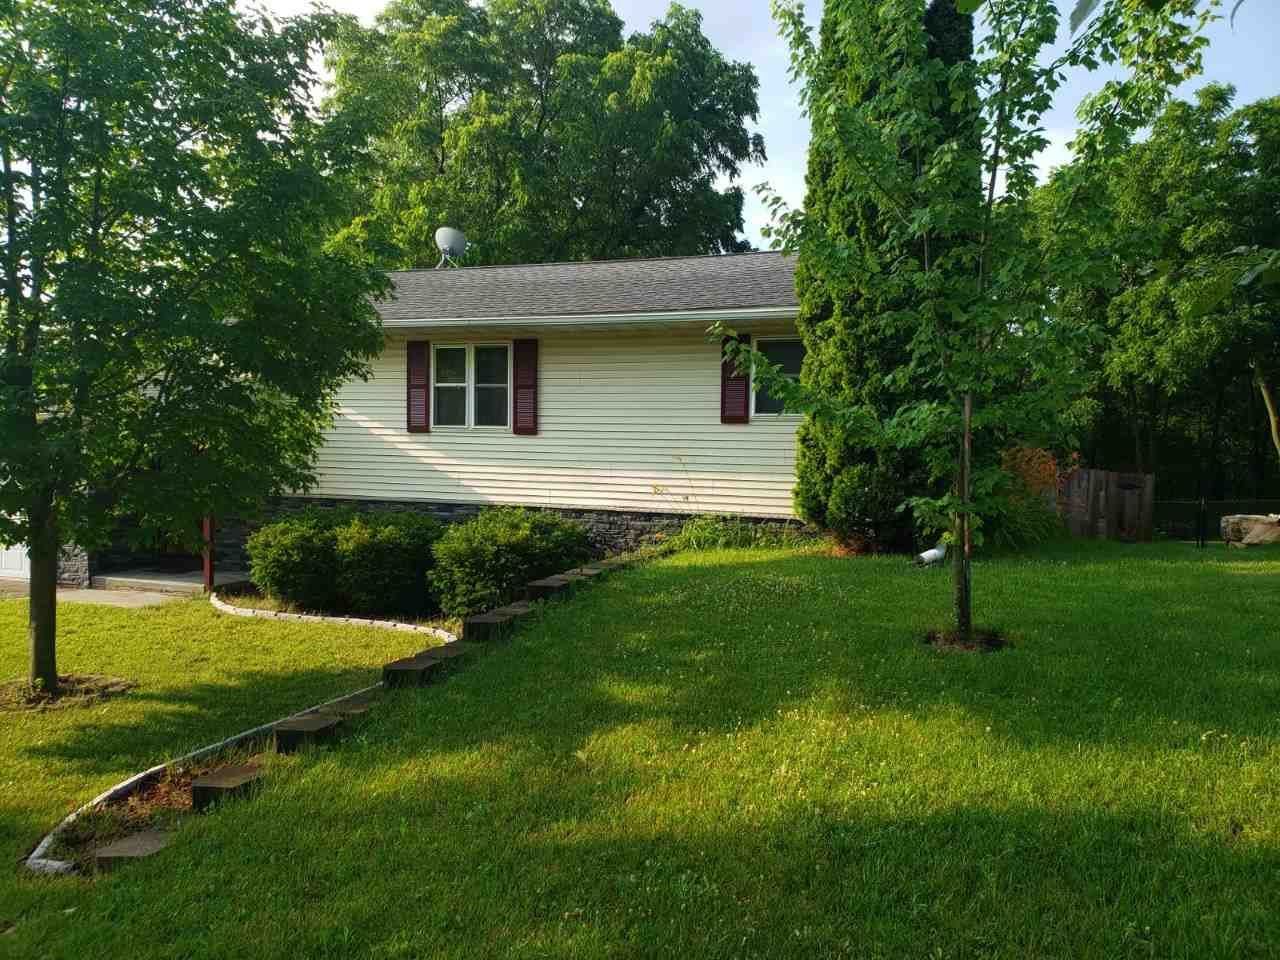 328 Mulberry St, Baraboo, WI 53913 - #: 1887786